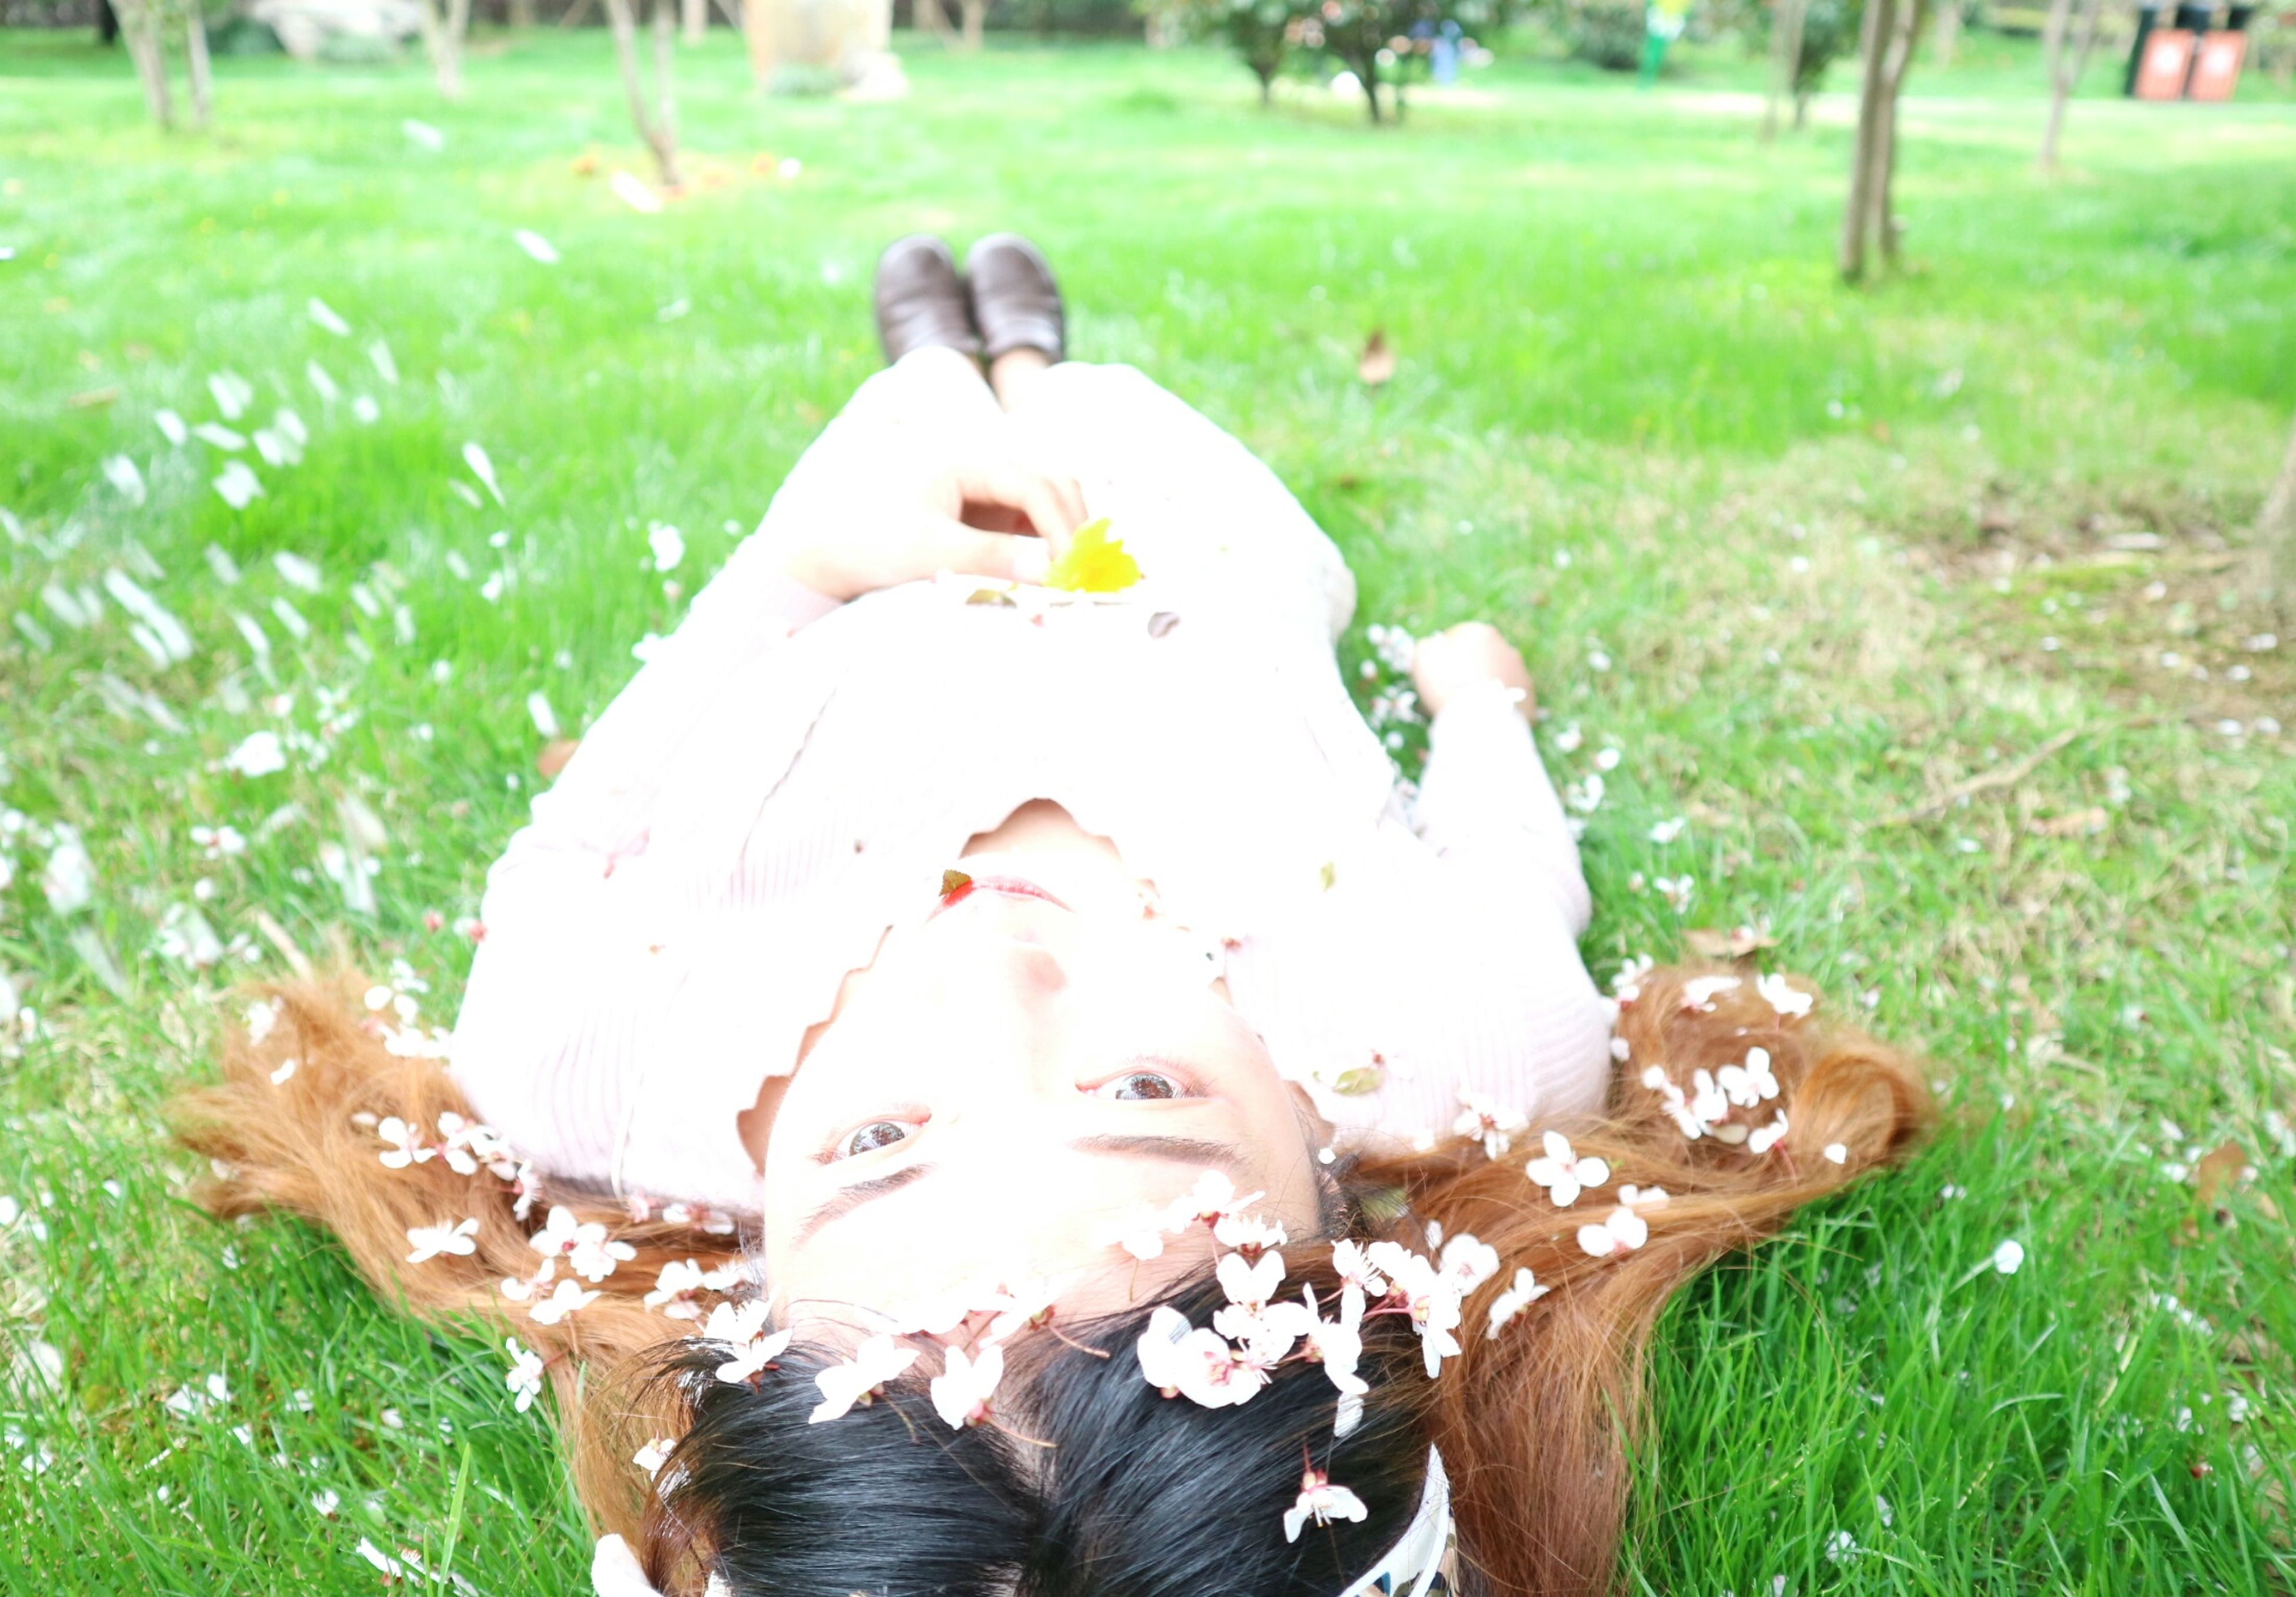 grass, rear view, playing, outdoors, one person, happiness, day, nature, people, adult